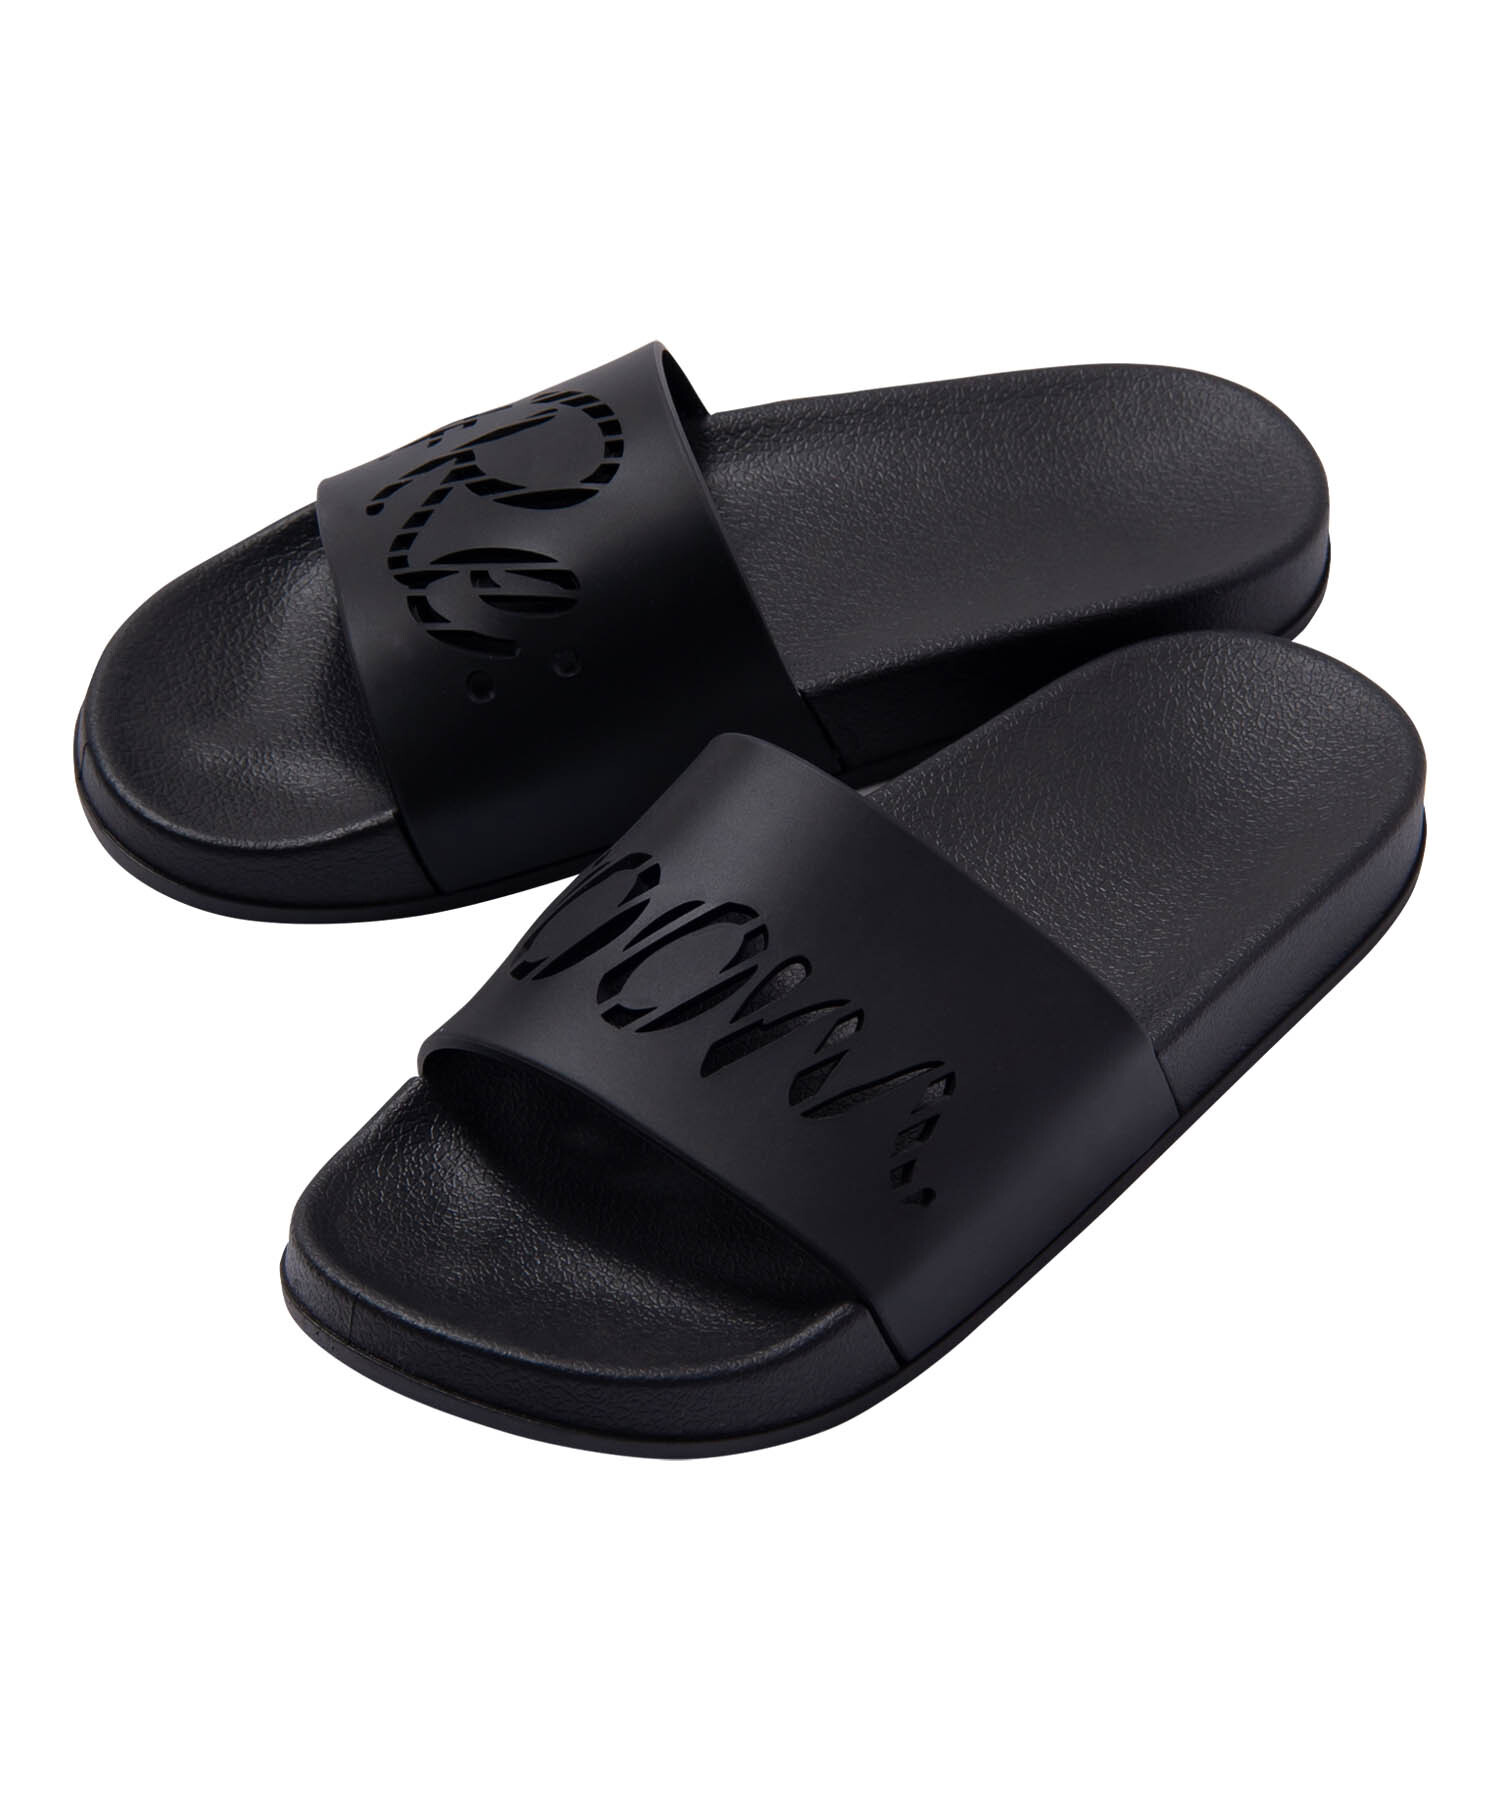 MESH LOGO SHOWER SANDALS[RSH013]